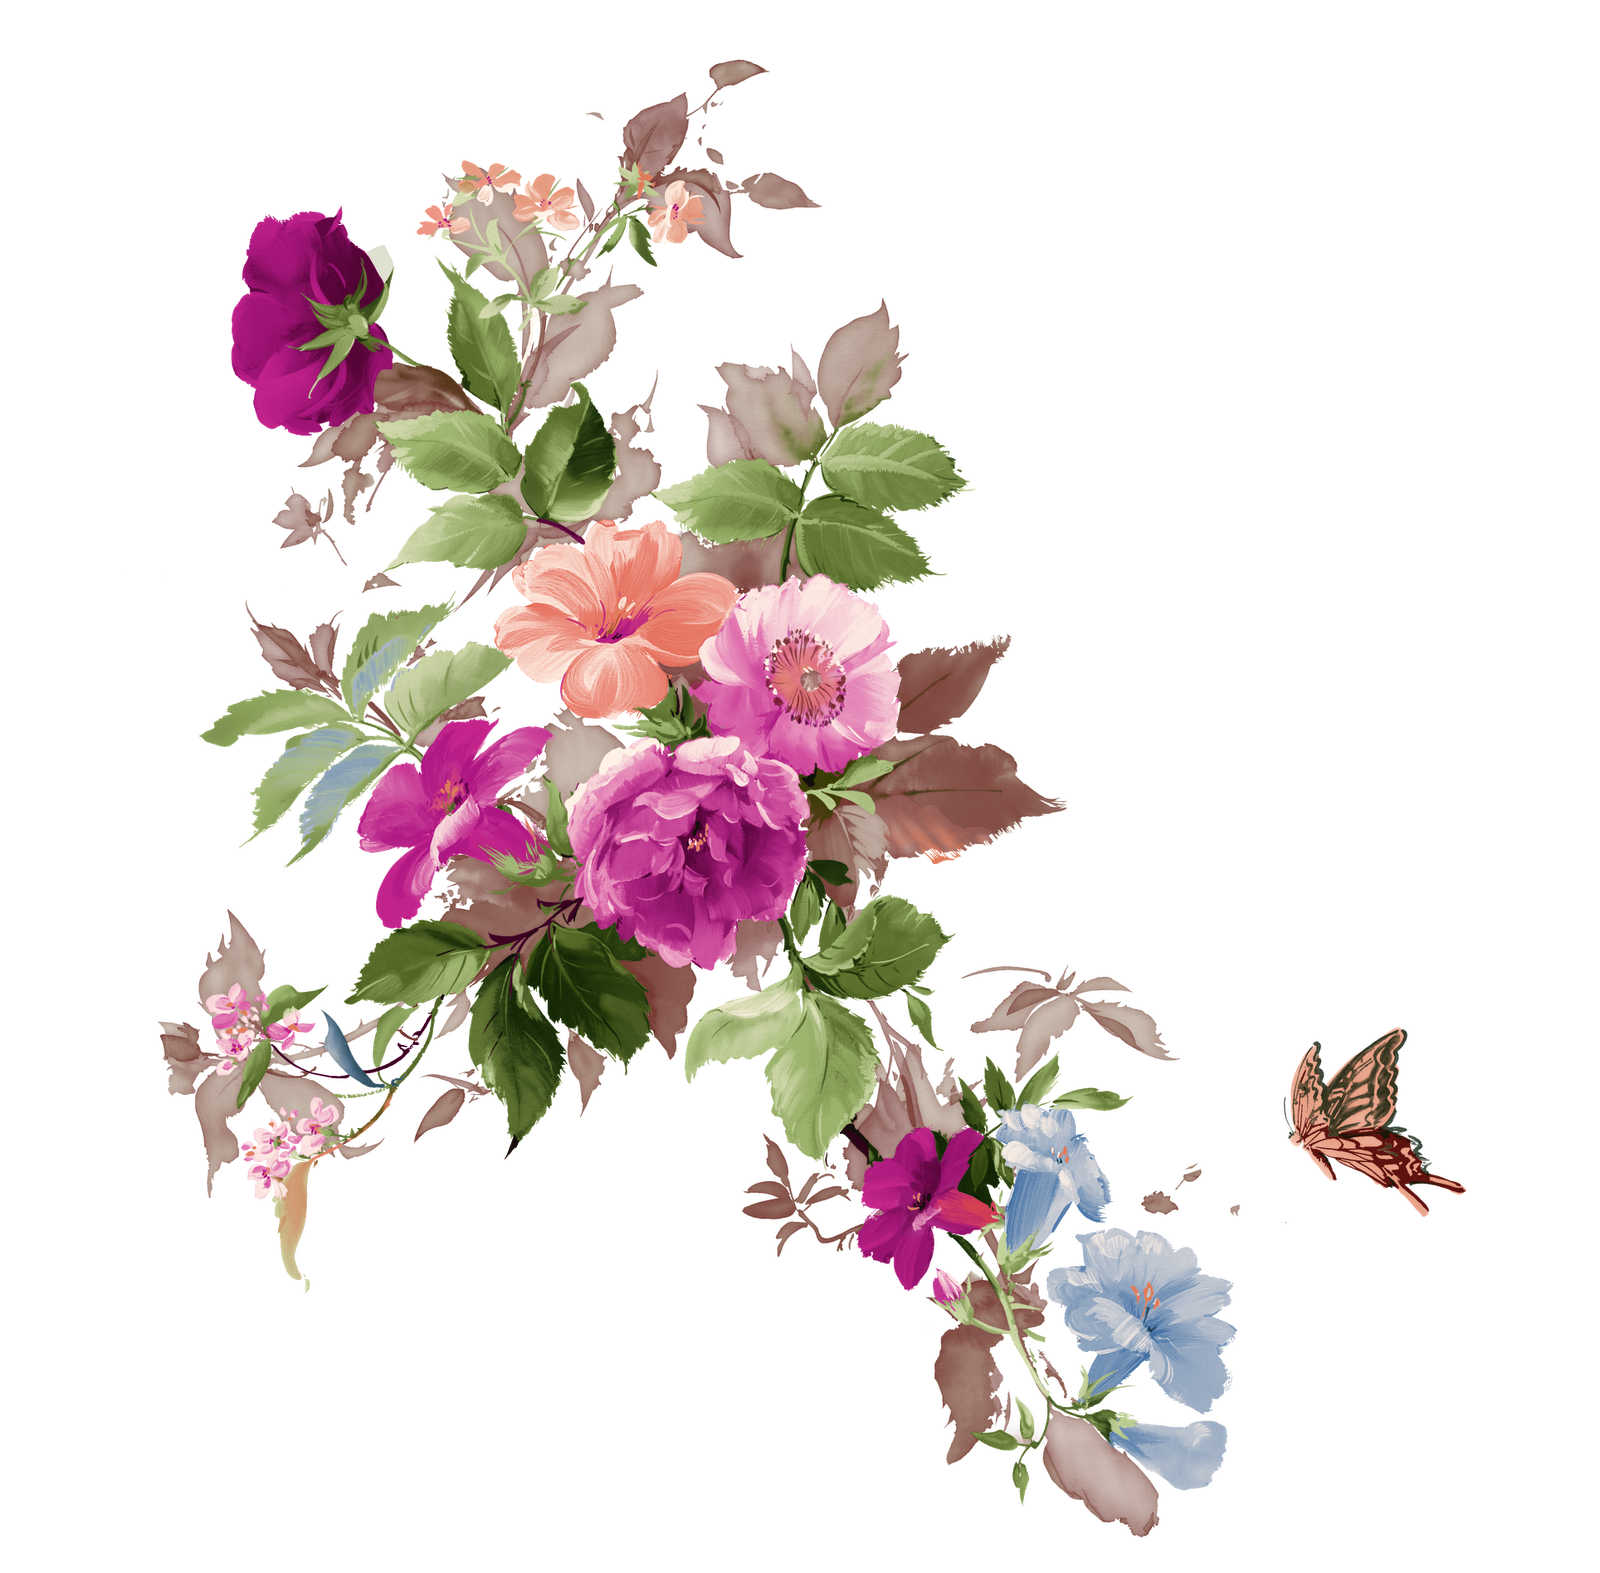 Free download images of flowers banner free Flower Transparent PNG Pictures - Free Icons and PNG Backgrounds banner free